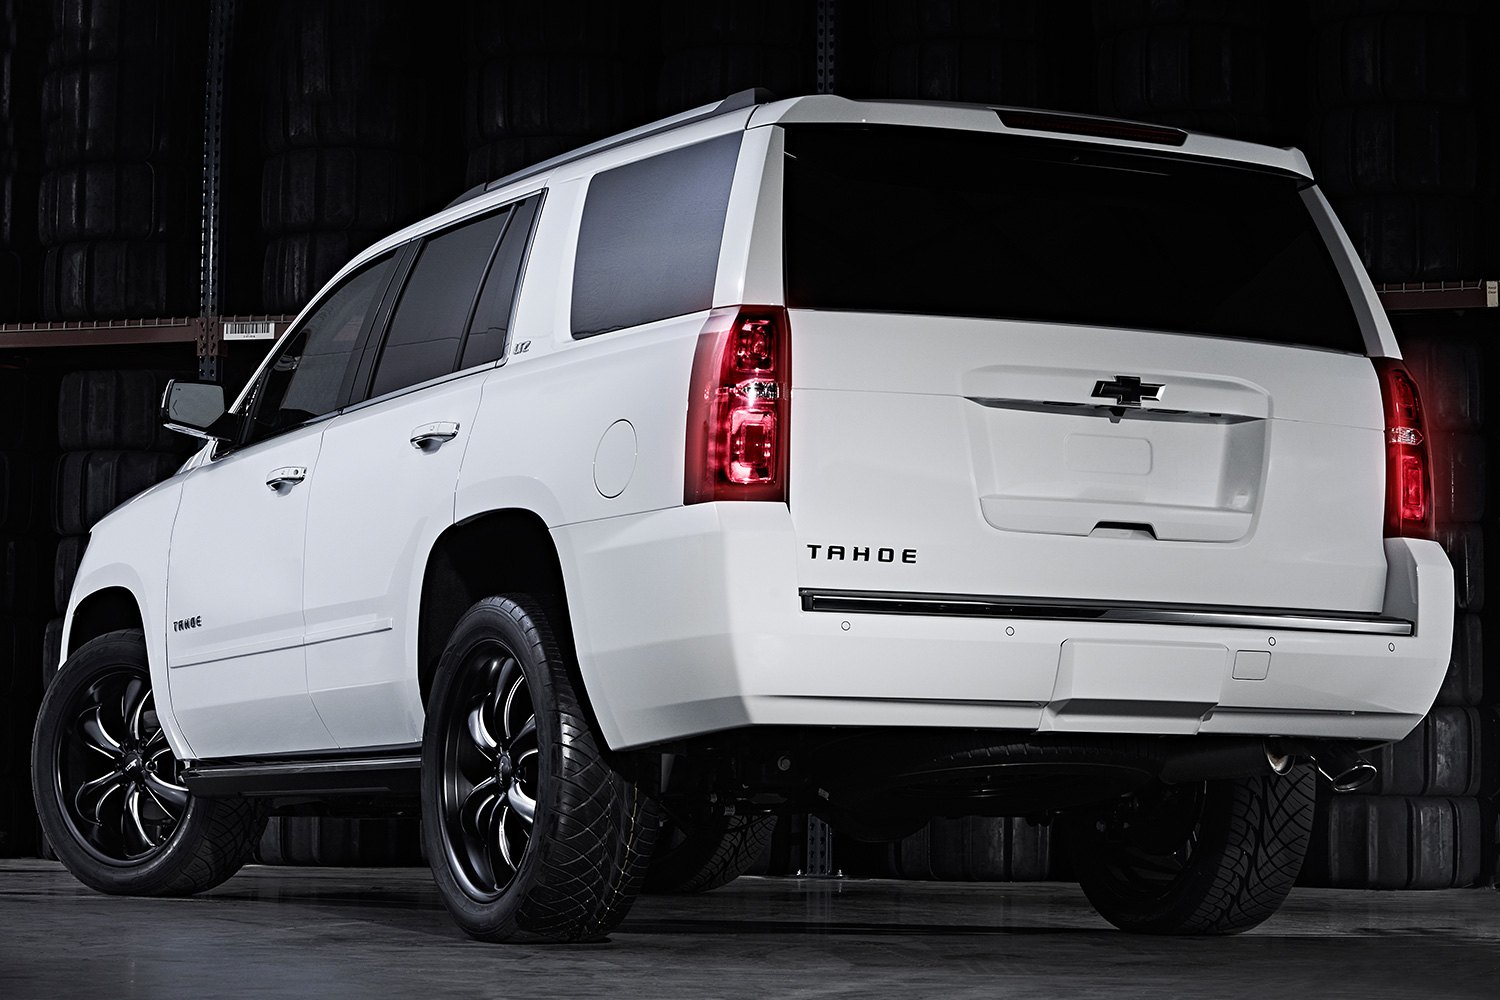 Chevy Tahoe Rims And Tires ... ® - AR914 TT60 TRUCK Satin Black with Milled Accents on Chevy Tahoe